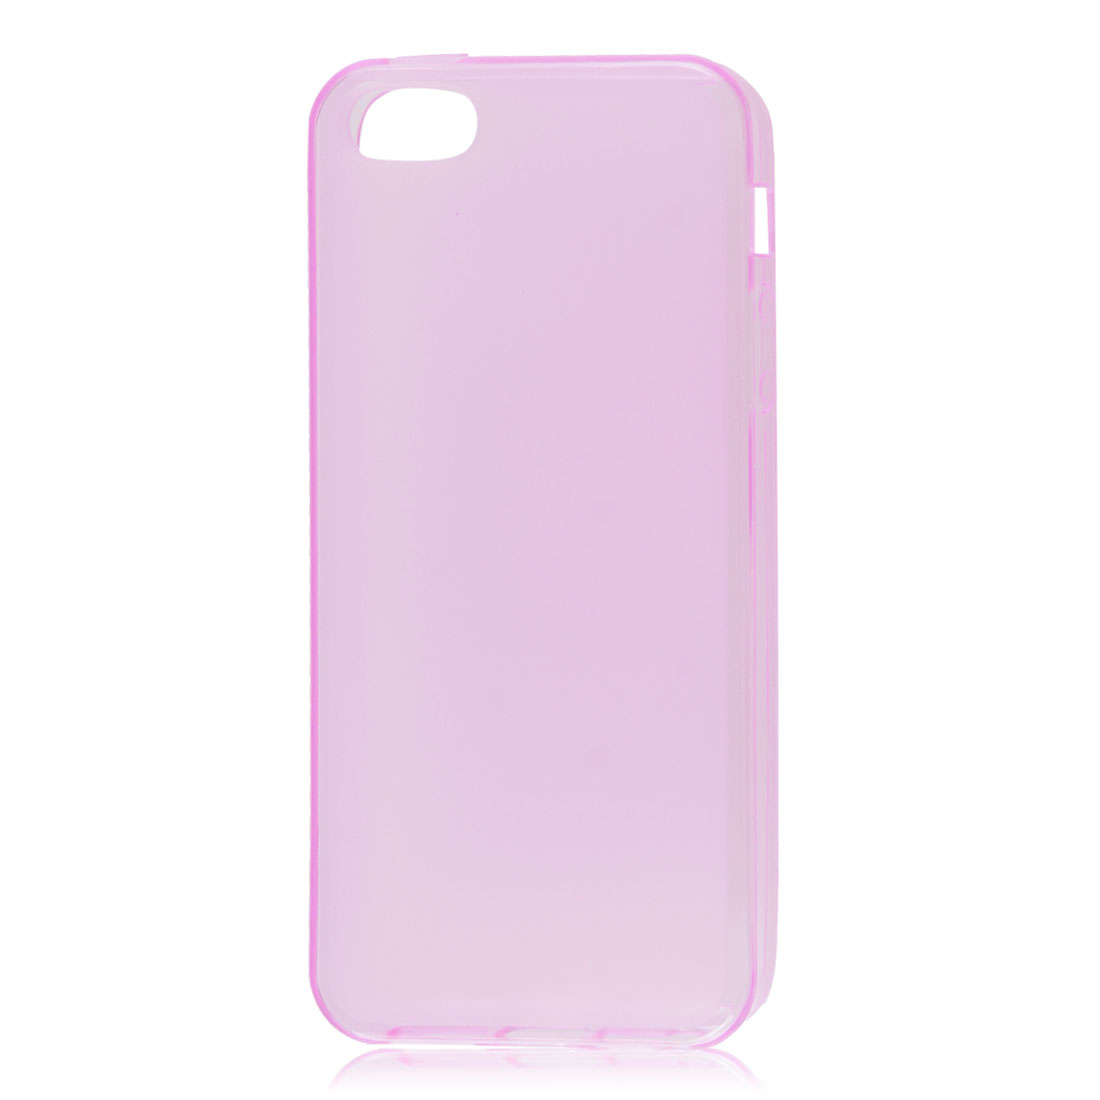 Pink Soft Plastic TPU Protective Case Skin Cover for iPhone 5 5G